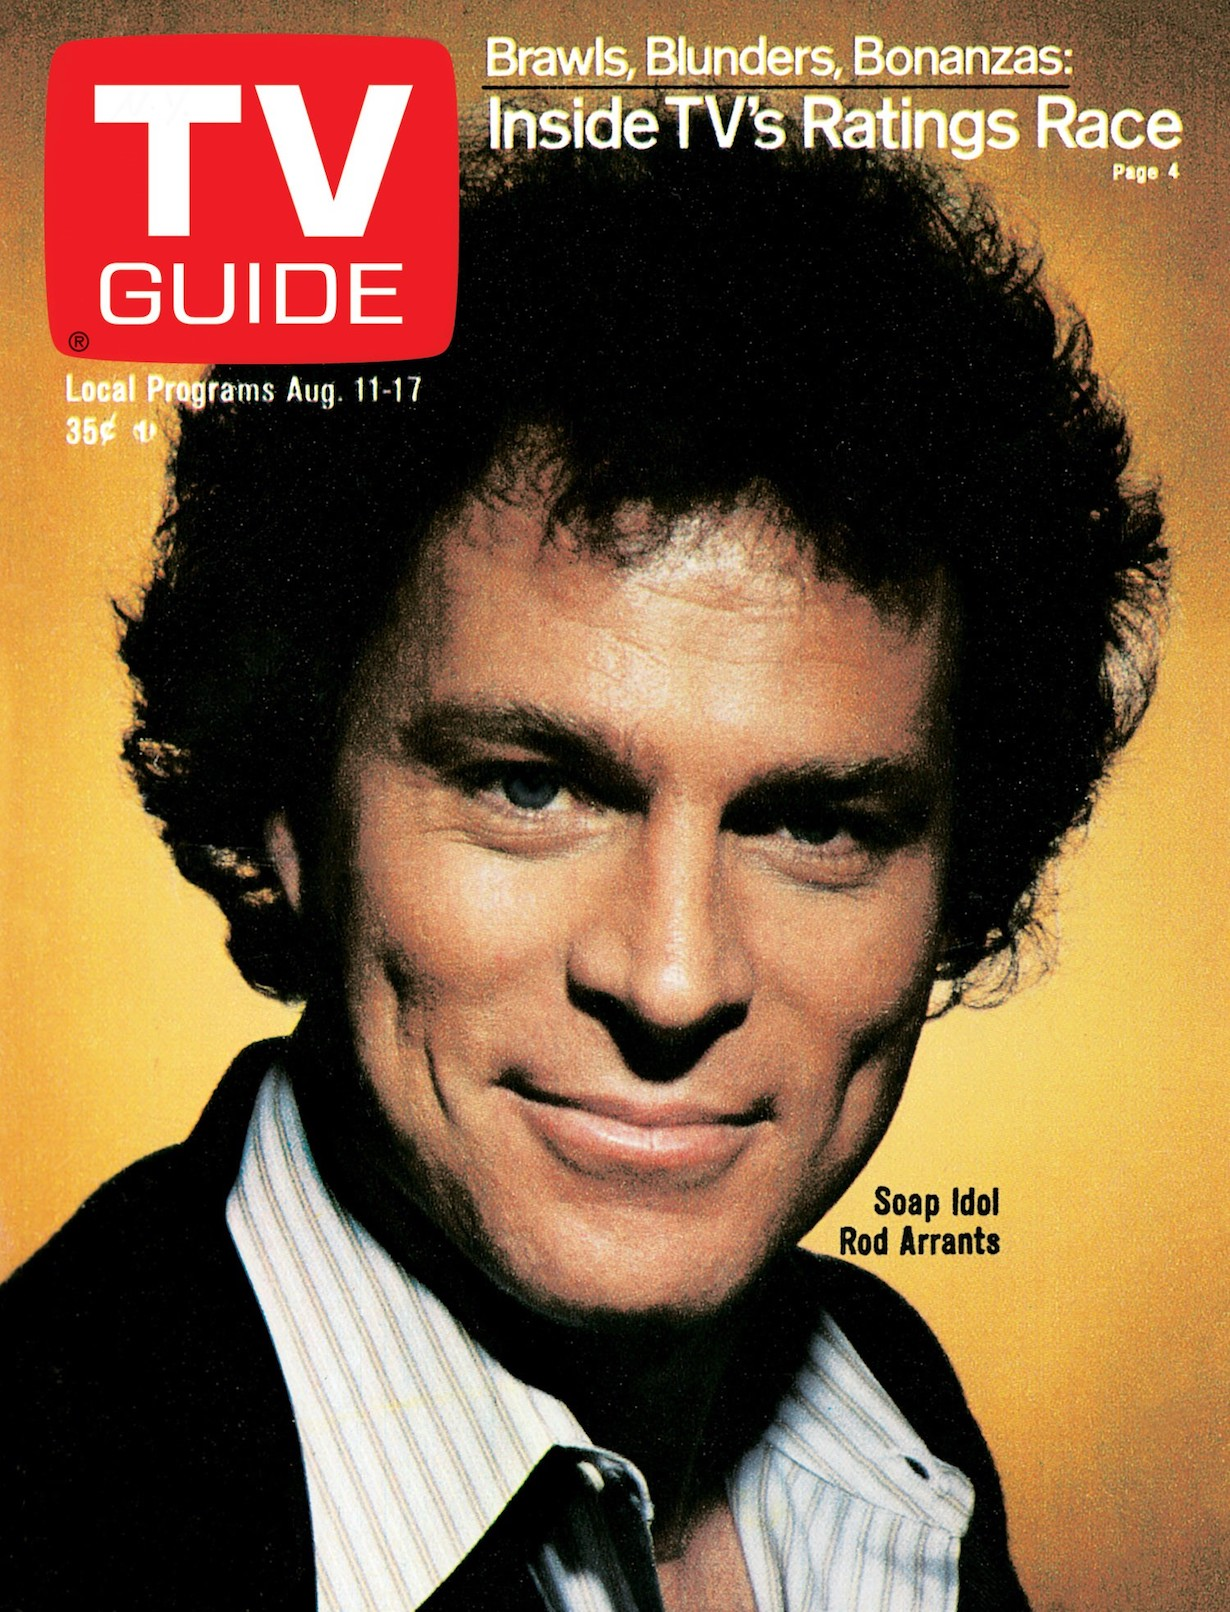 SEARCH FOR TOMORROW, Rod Arrants, TV GUIDE cover, August 11-17, 1979. TV Guide/courtesy Everett Collection